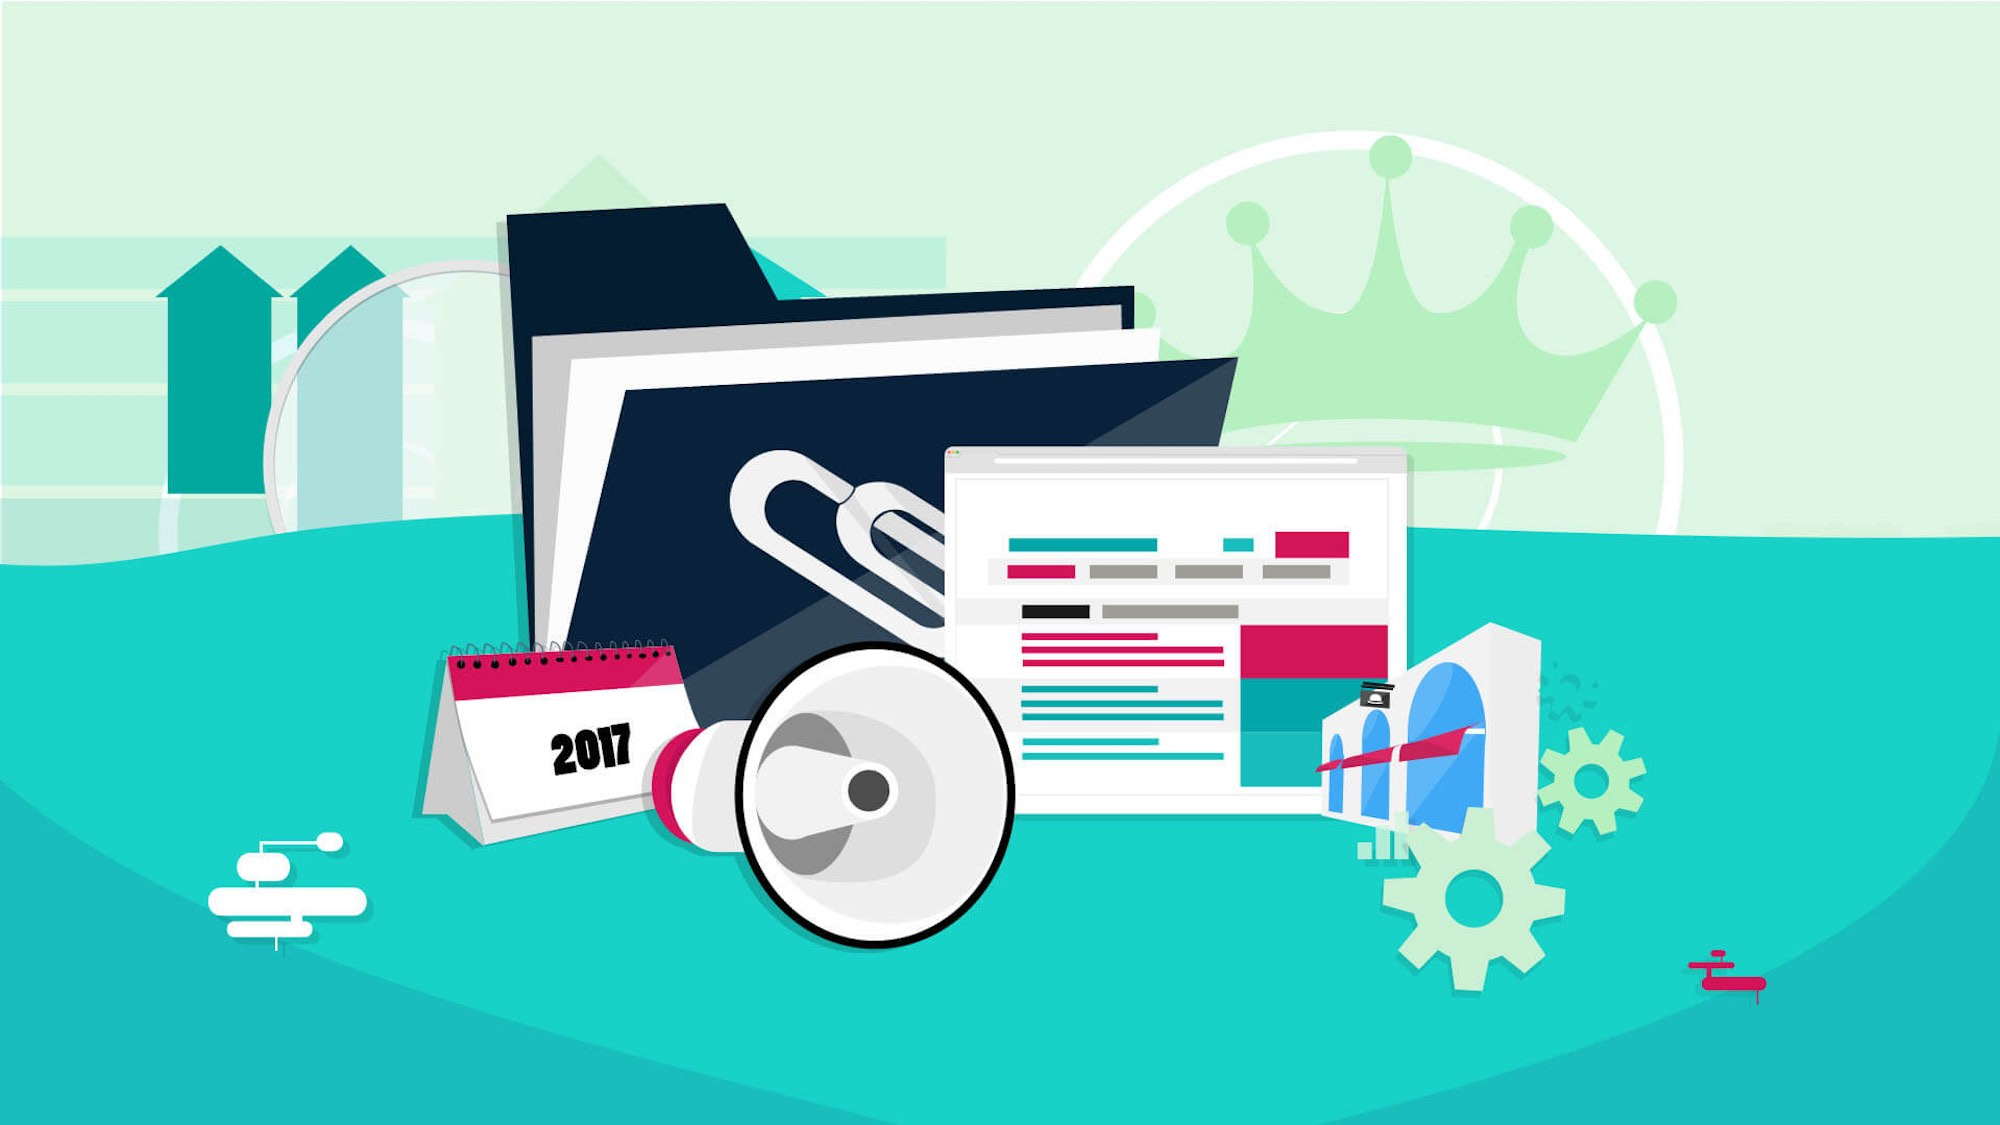 Why is it better than organic link building?